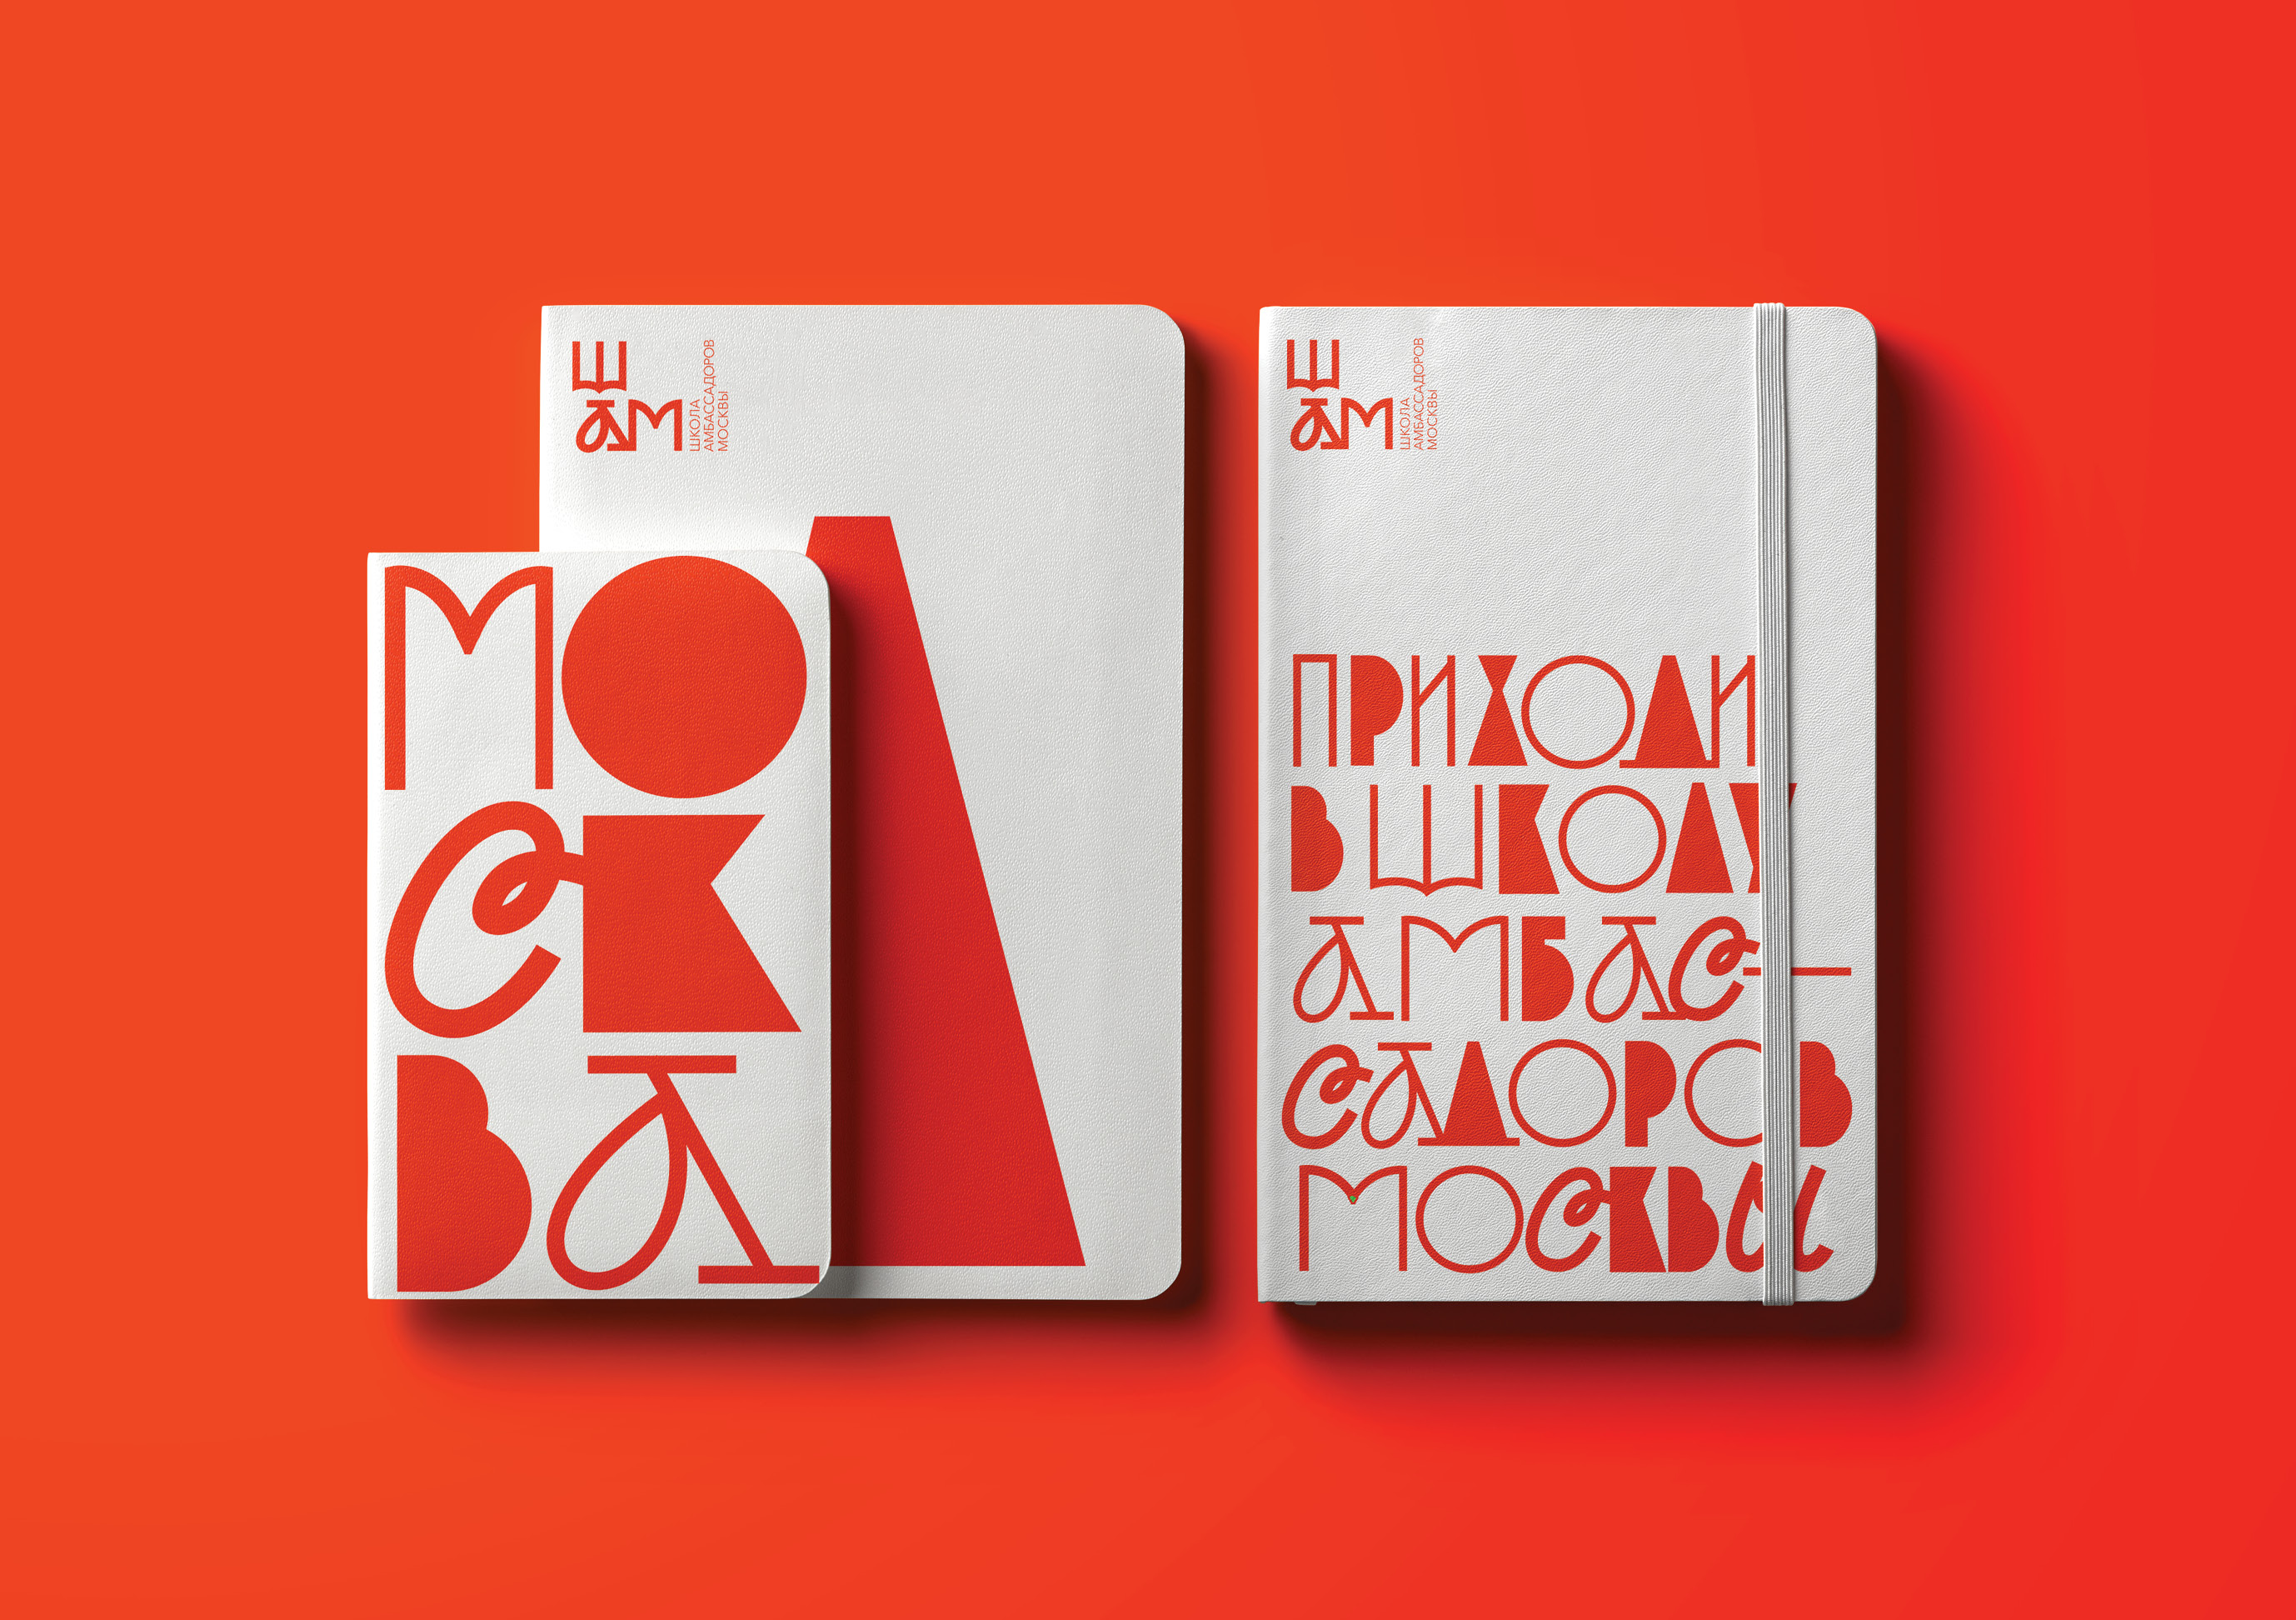 The School of Ambassadors of Moscow Branding Concept Design by Tanya Dunaeva